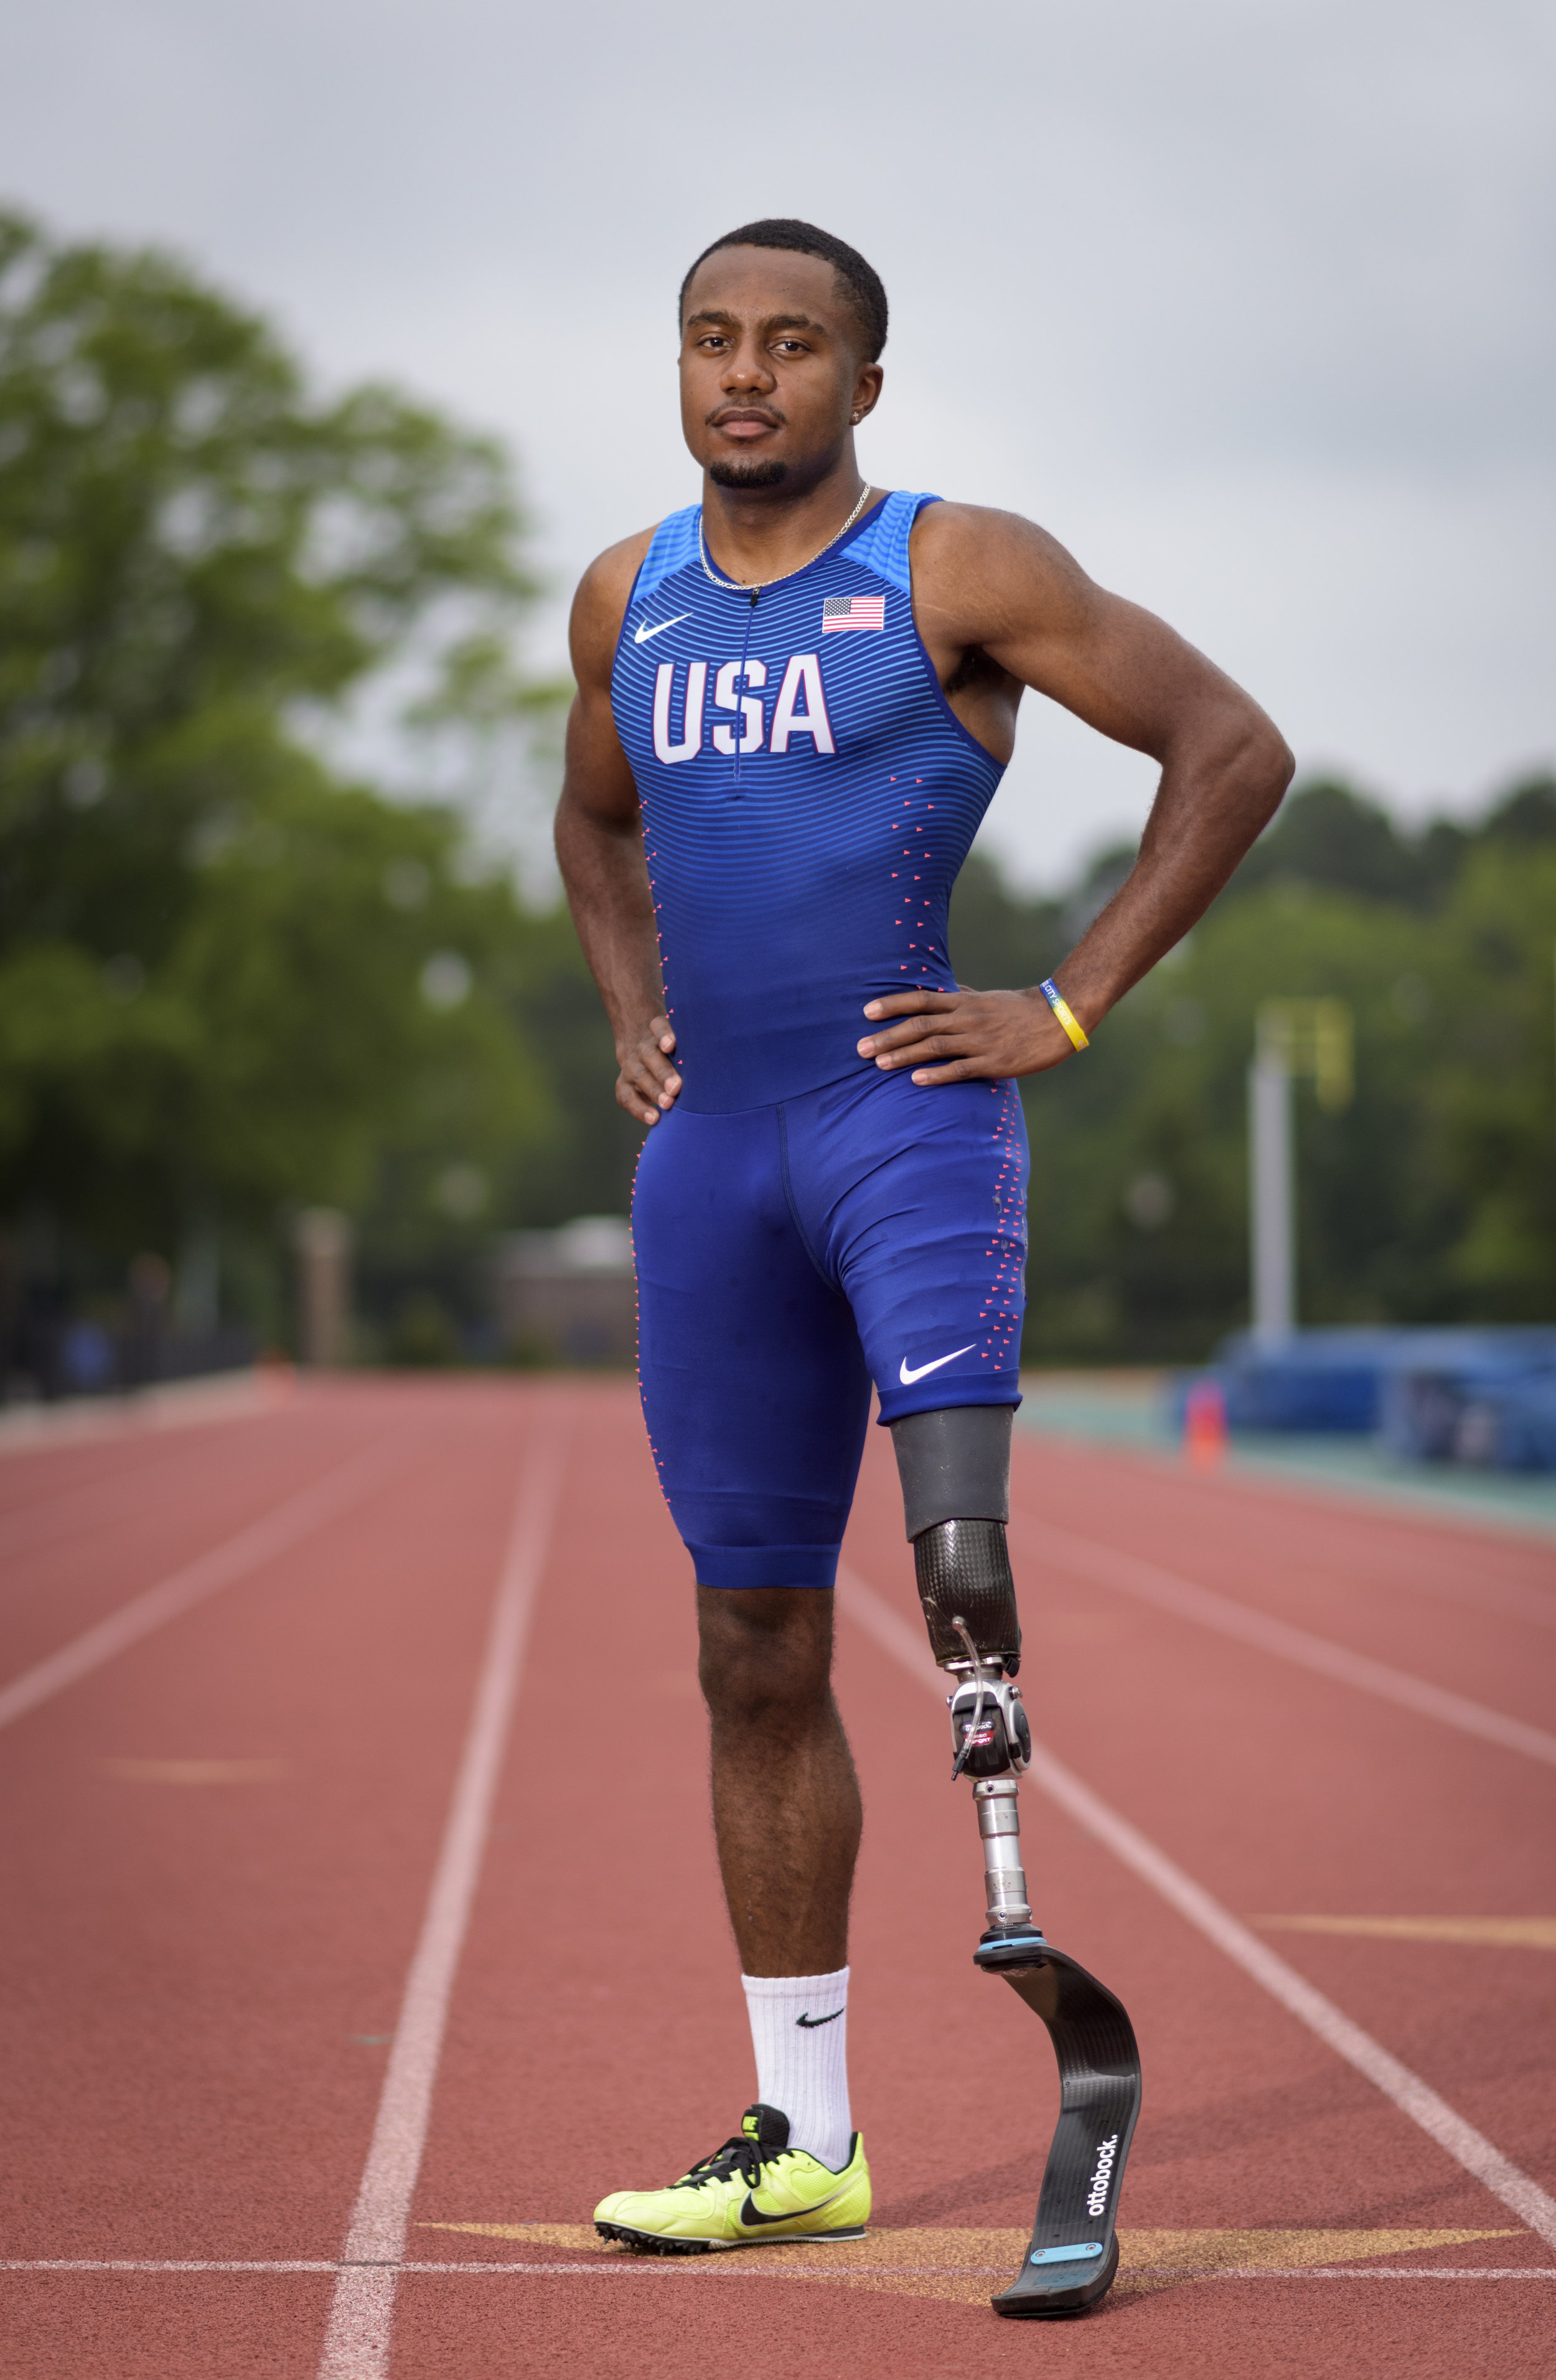 U.S. Paralympian Desmond Jackson poses for a portrait in Durham, NC on June 7, 2019.